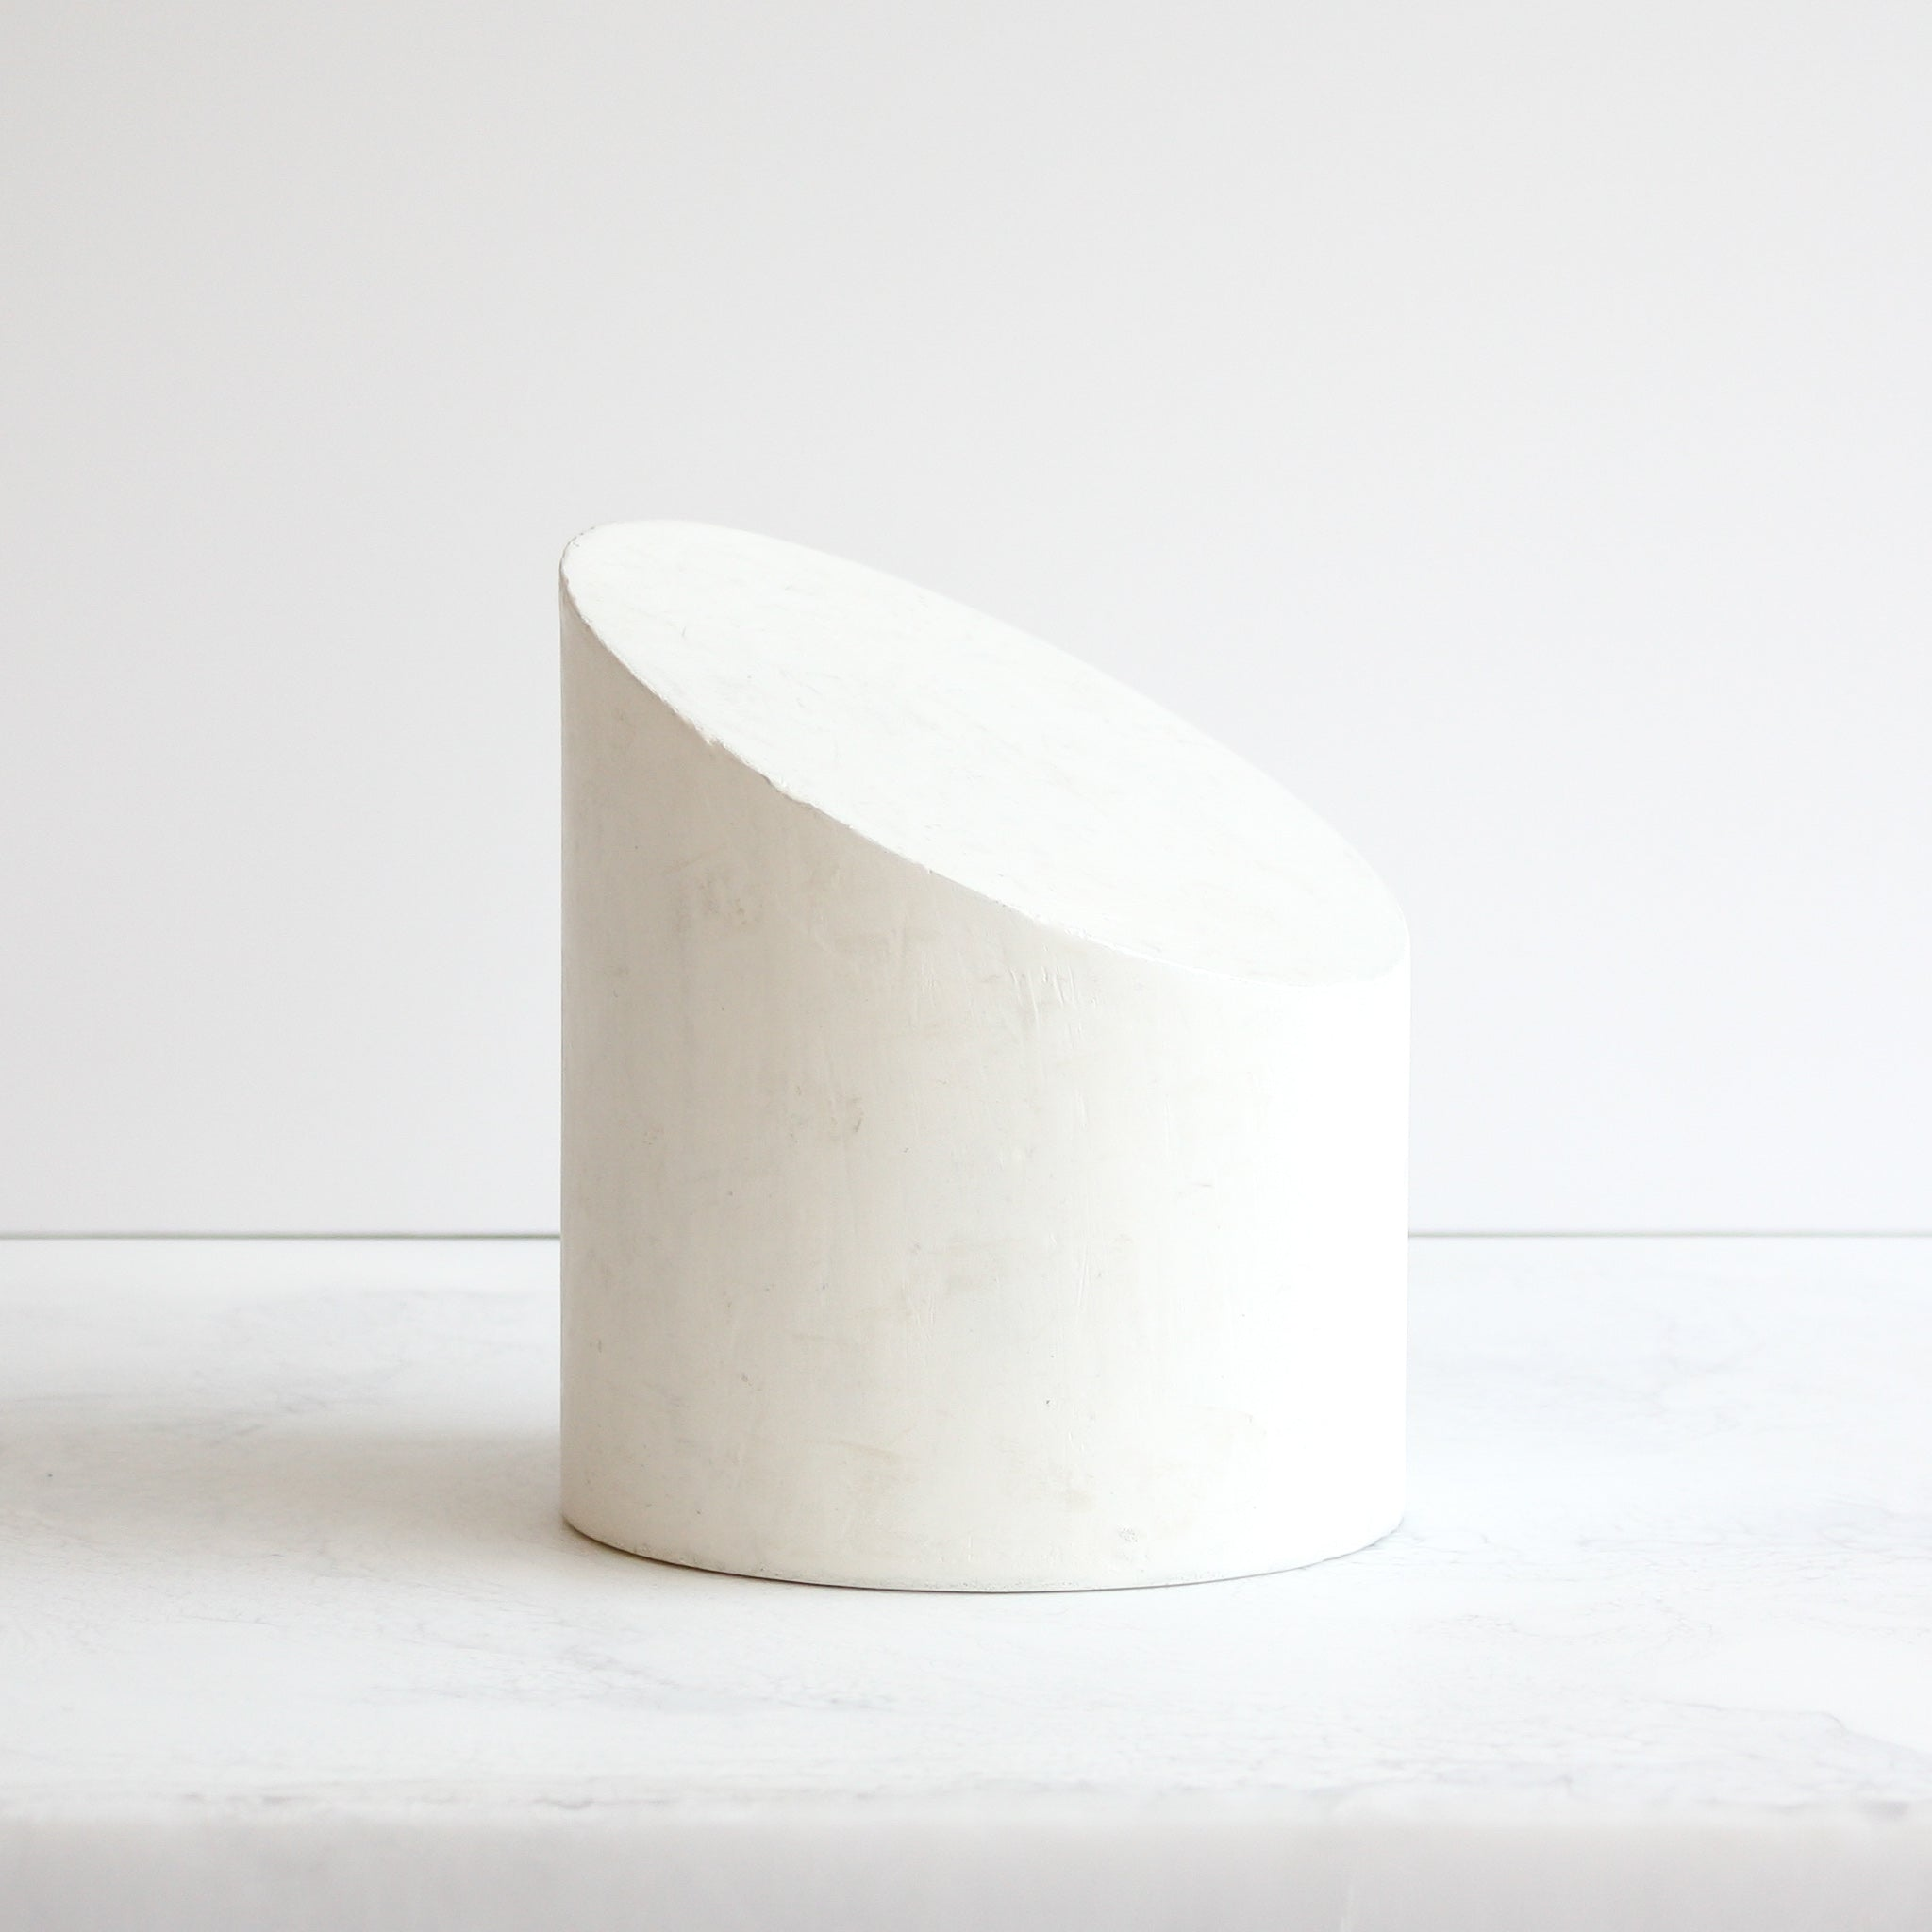 Amy Meier x Stone Yard geometric sculpture Forme Number Three